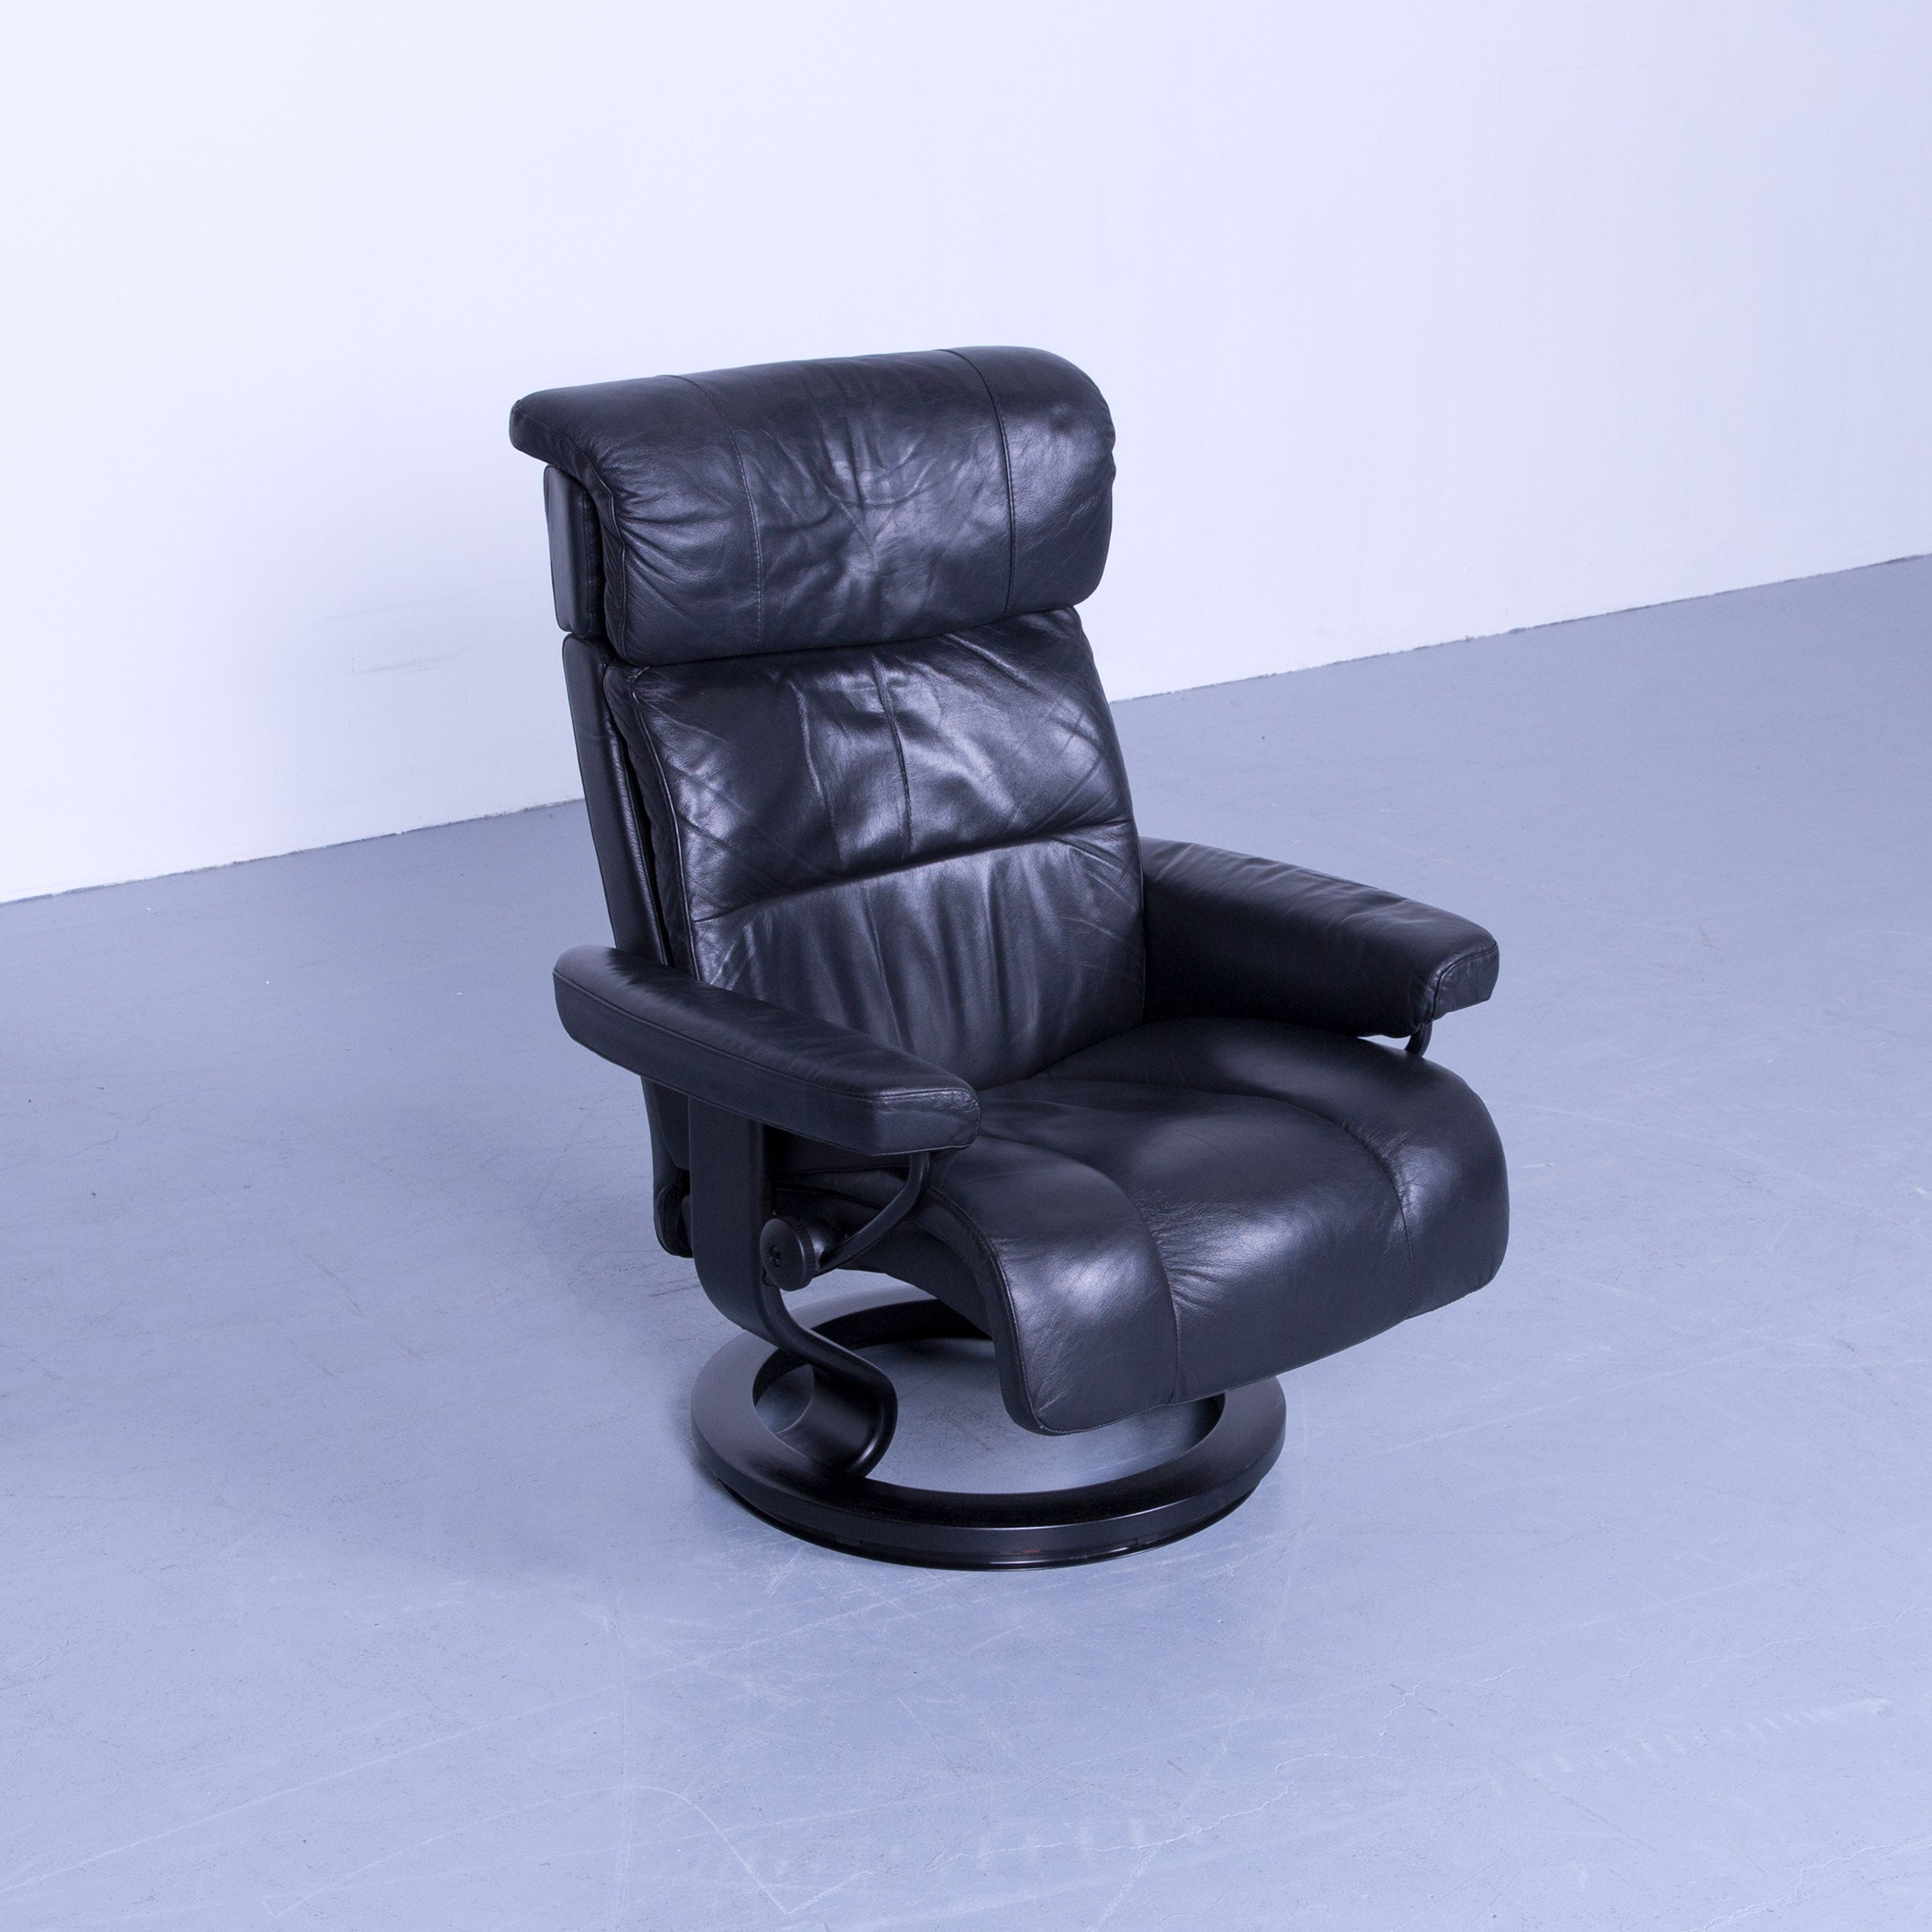 Stressless Sessel Bliss Stressless Sessel Funktion